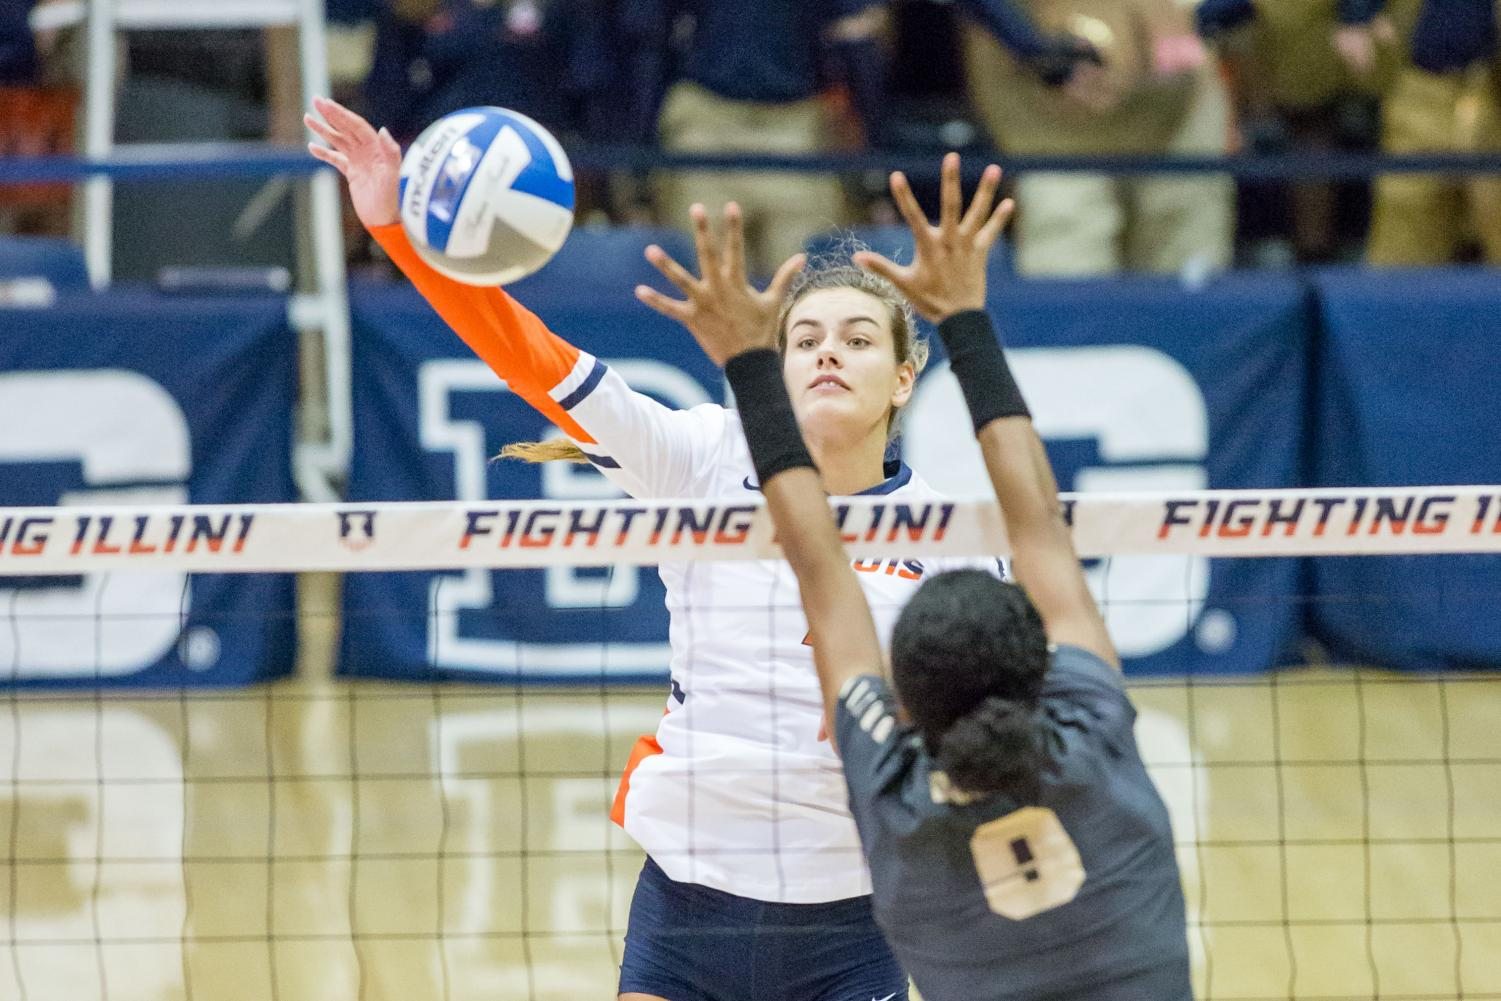 Illinois outside hitter Jacqueline Quade hits the ball during a match against Purdue at Huff Hall on Oct. 6. The Illini played the Spartans in their last game this year.